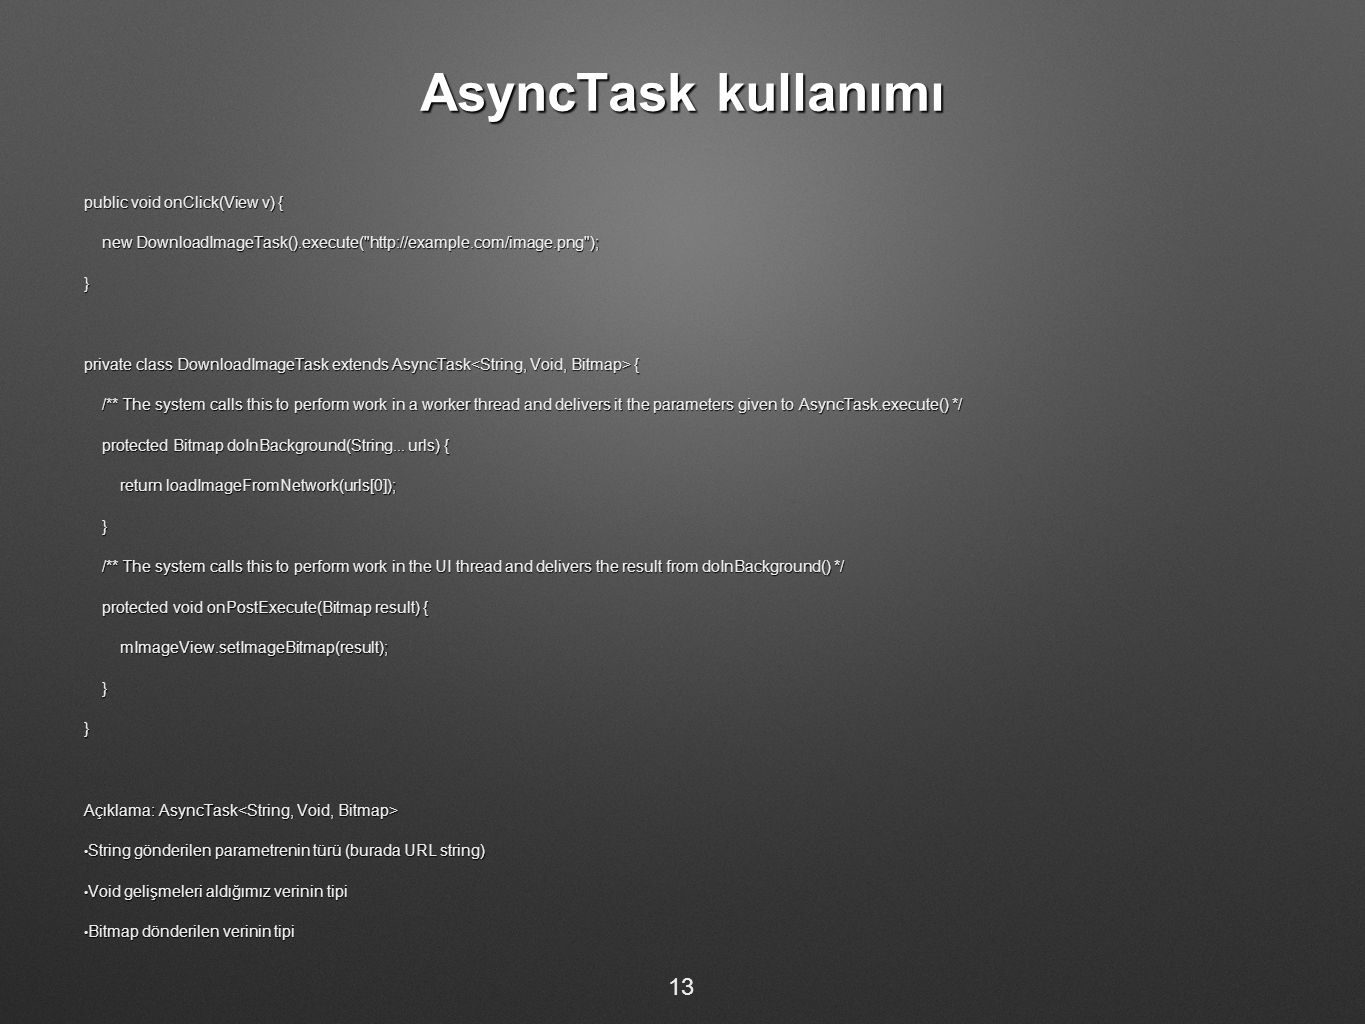 AsyncTask kullanımı public void onClick(View v) { new DownloadImageTask().execute( http://example.com/image.png ); new DownloadImageTask().execute( http://example.com/image.png );} private class DownloadImageTask extends AsyncTask { /** The system calls this to perform work in a worker thread and delivers it the parameters given to AsyncTask.execute() */ /** The system calls this to perform work in a worker thread and delivers it the parameters given to AsyncTask.execute() */ protected Bitmap doInBackground(String...